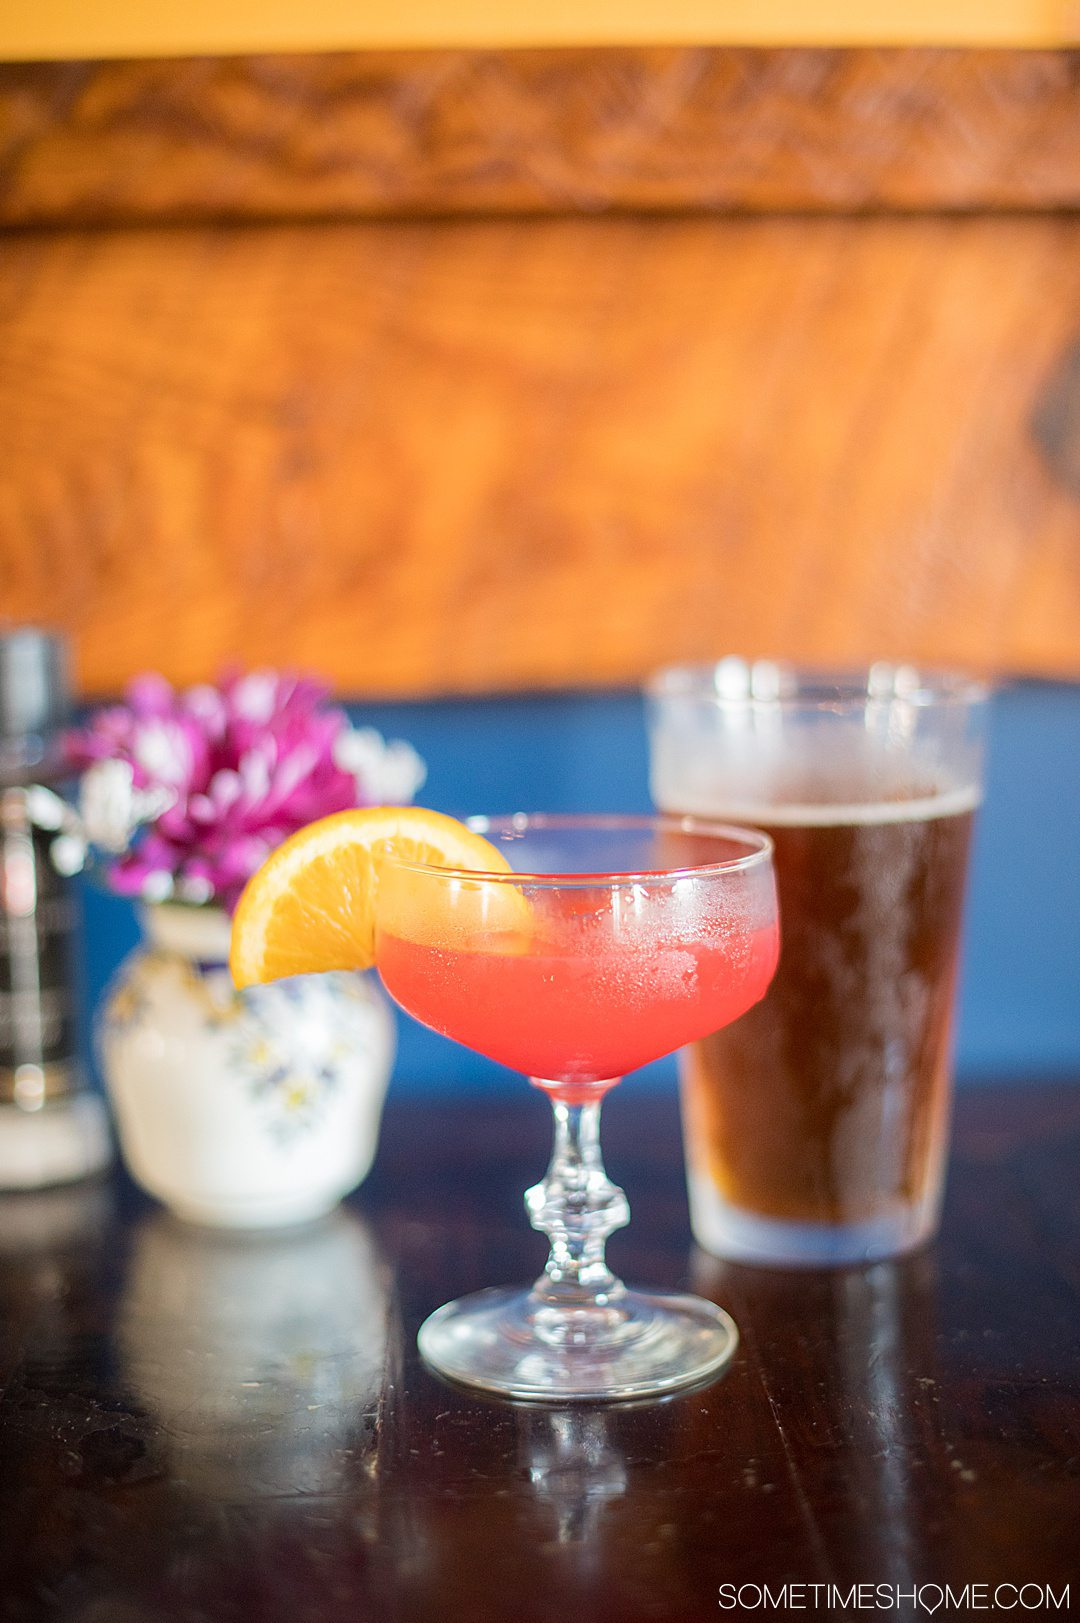 A pink drink in a martini glass with an orange slice and pour pint of draught beer behind it at Robinson Ferry in Warrenton, NC.